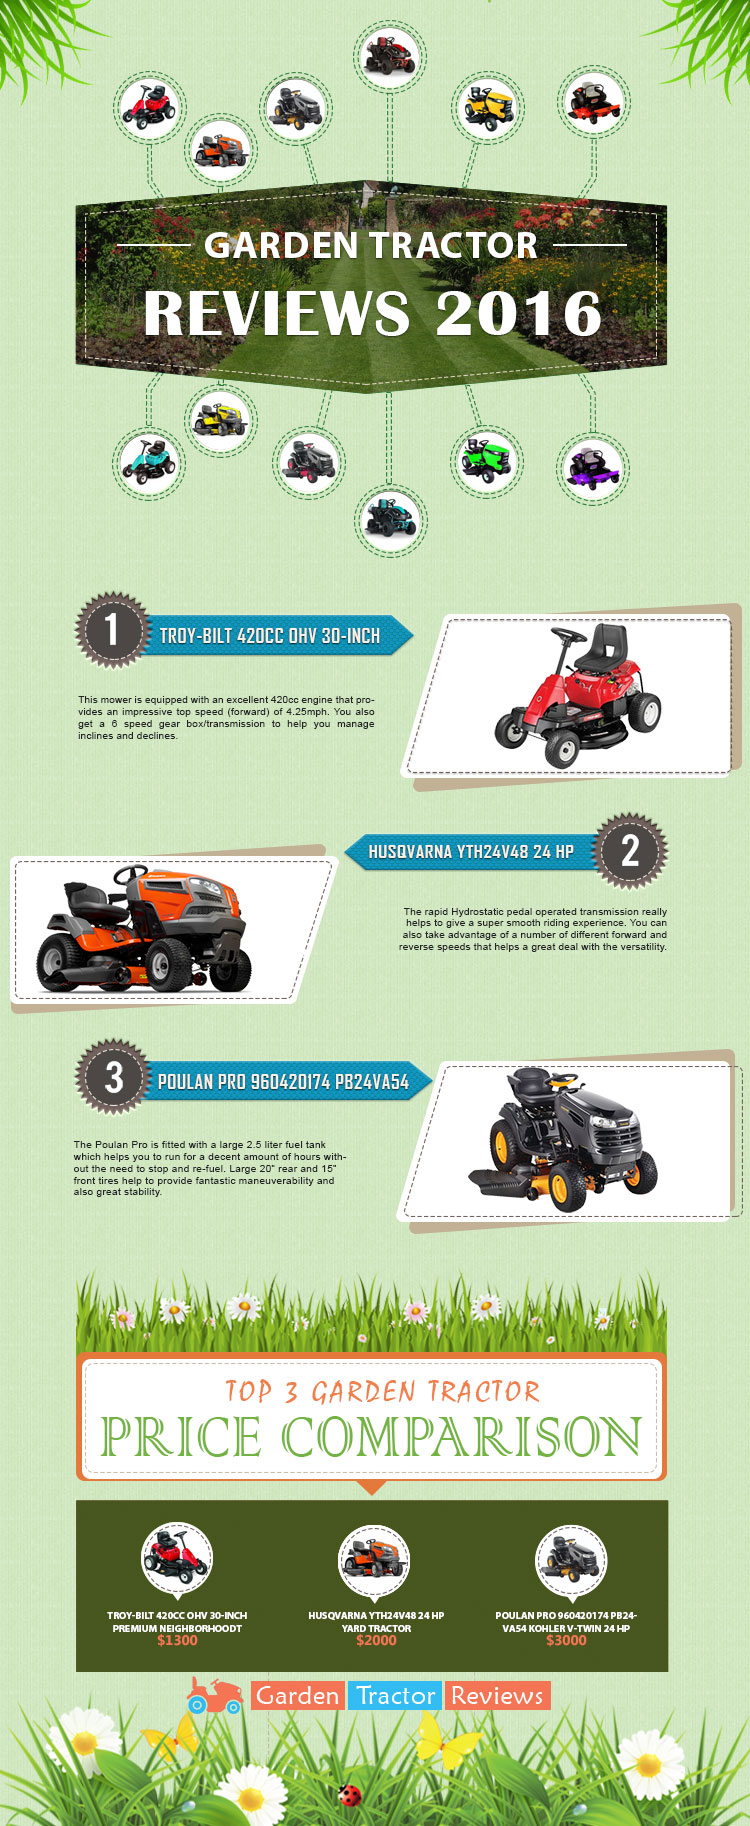 Best Garden Tractor and Riding Lawn Mower Reviews 2017 Garden